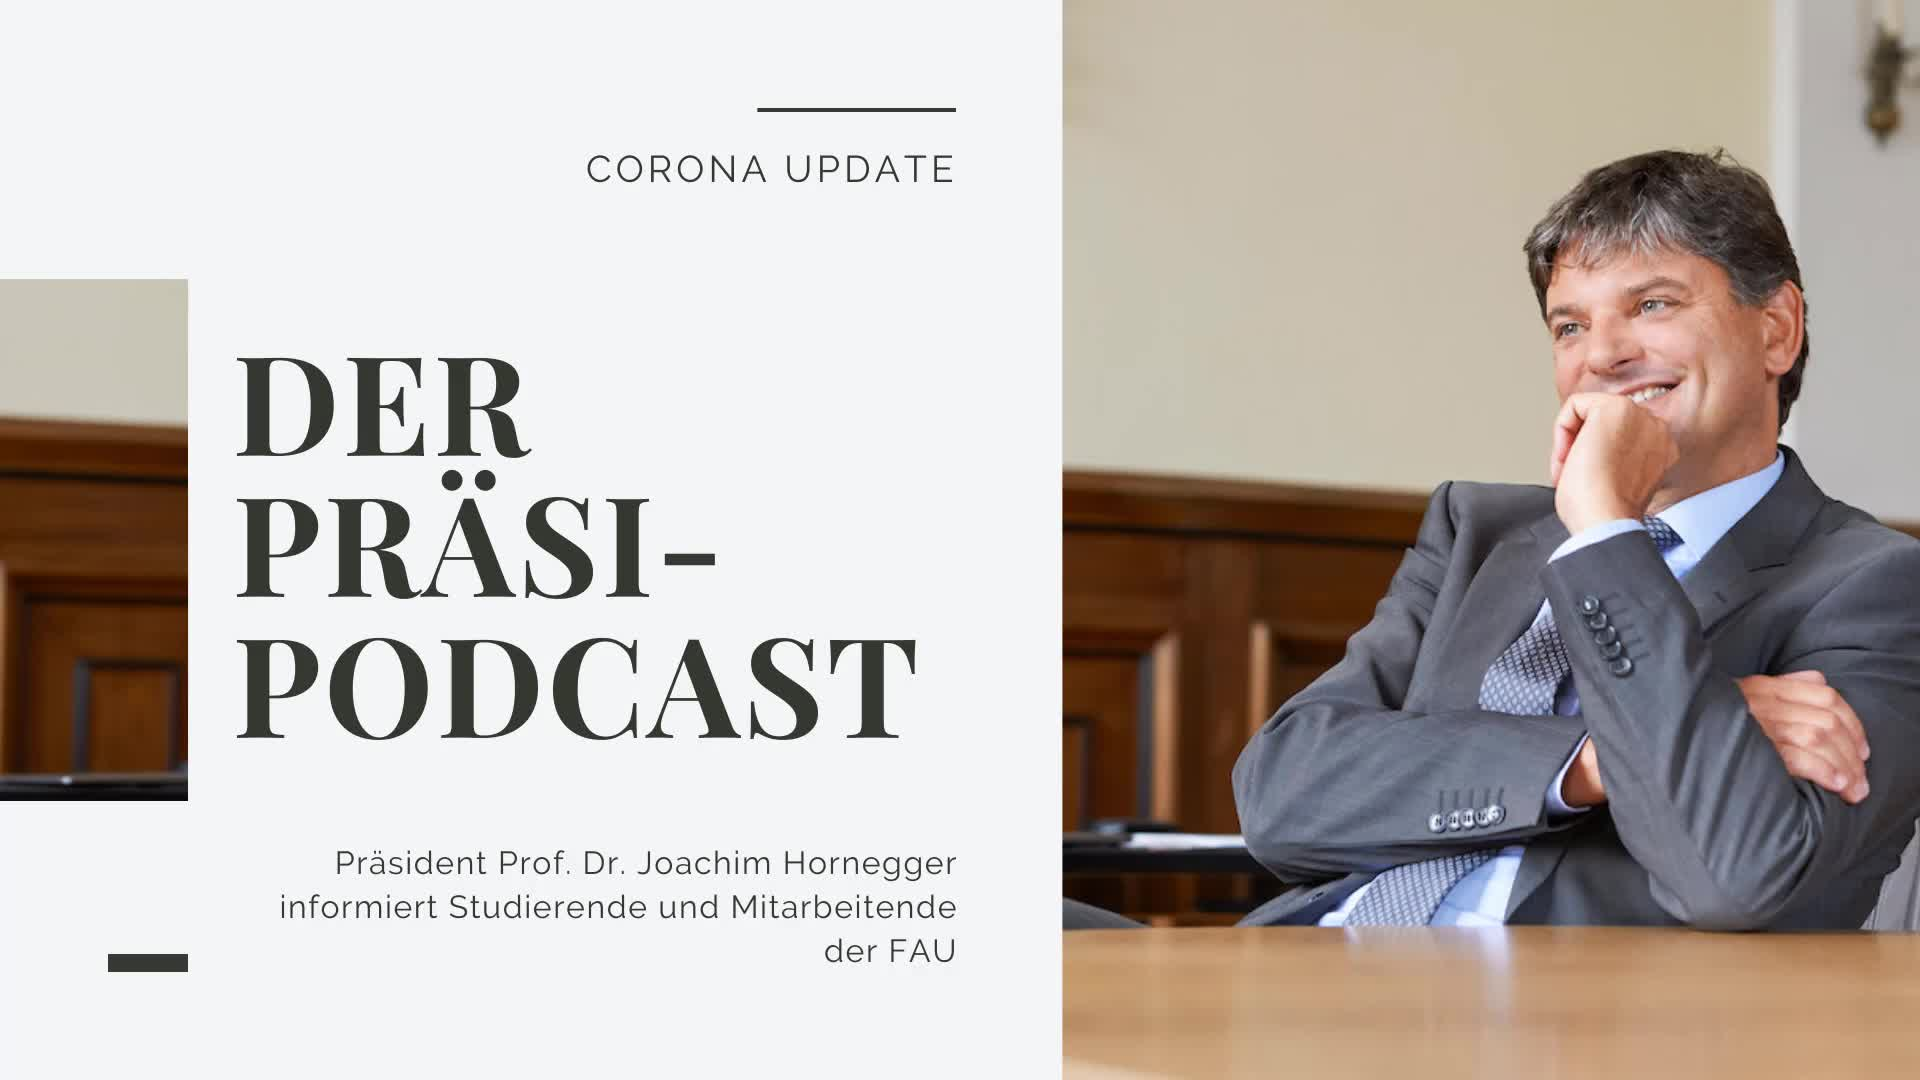 """Der Präsi-Podcast"" vom 14. September 2020 preview image"